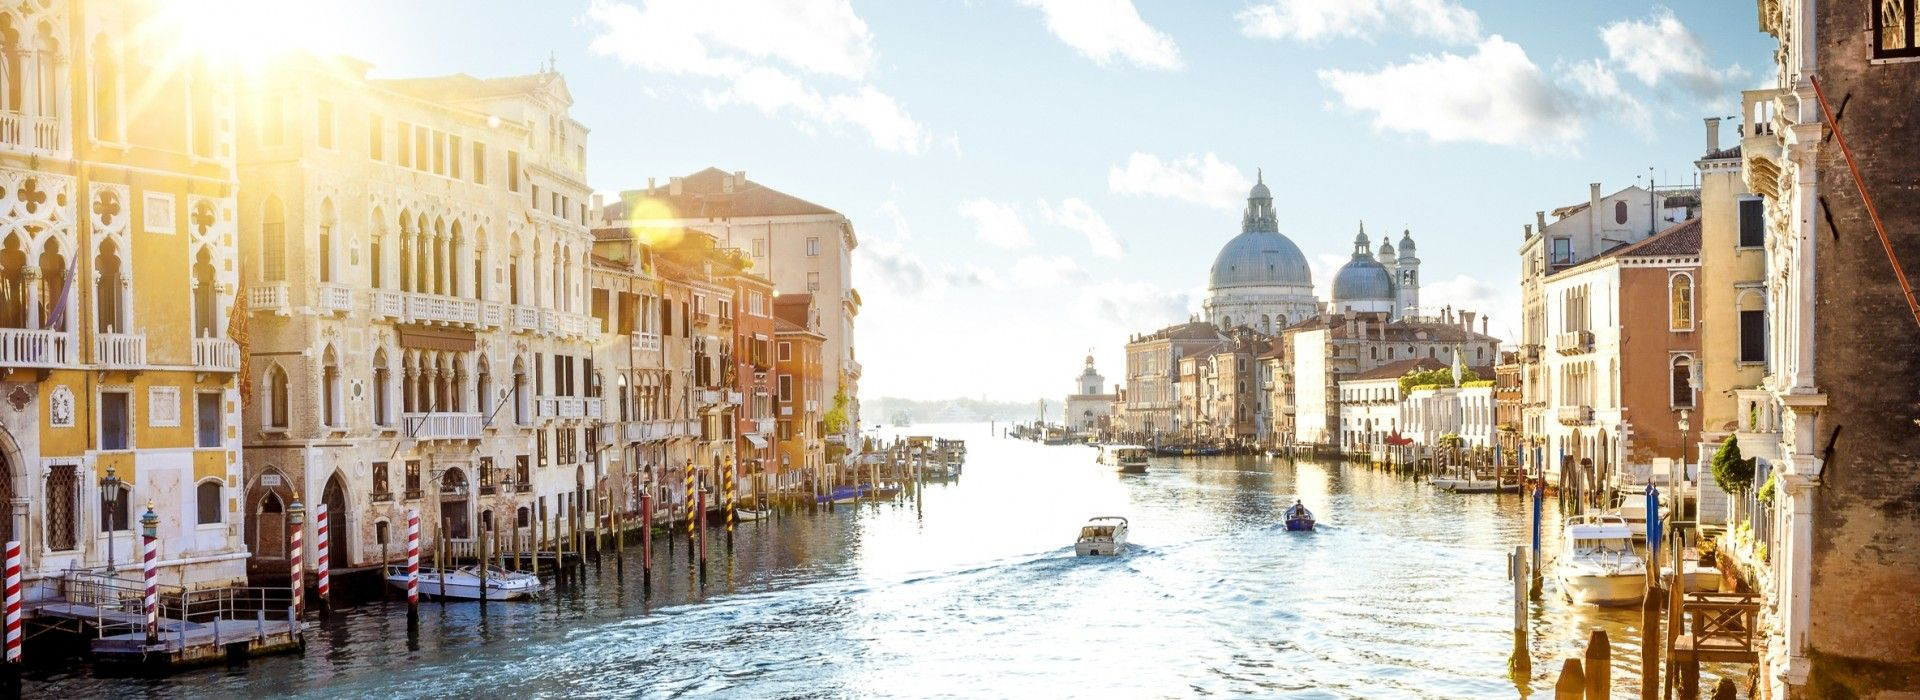 Travelling Venice - Tours and Trips in Venice